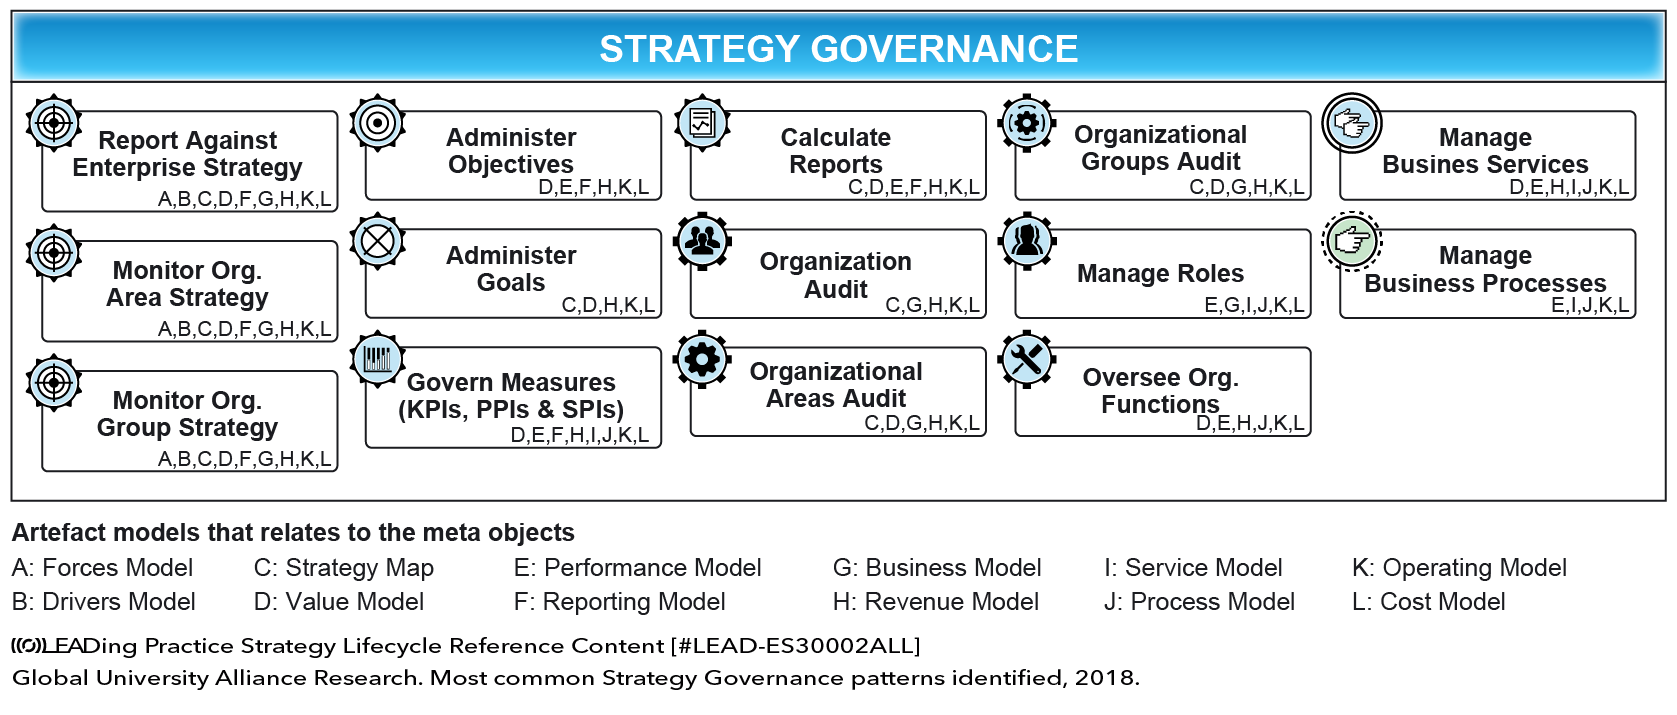 STRATEGY GOVERNANCE